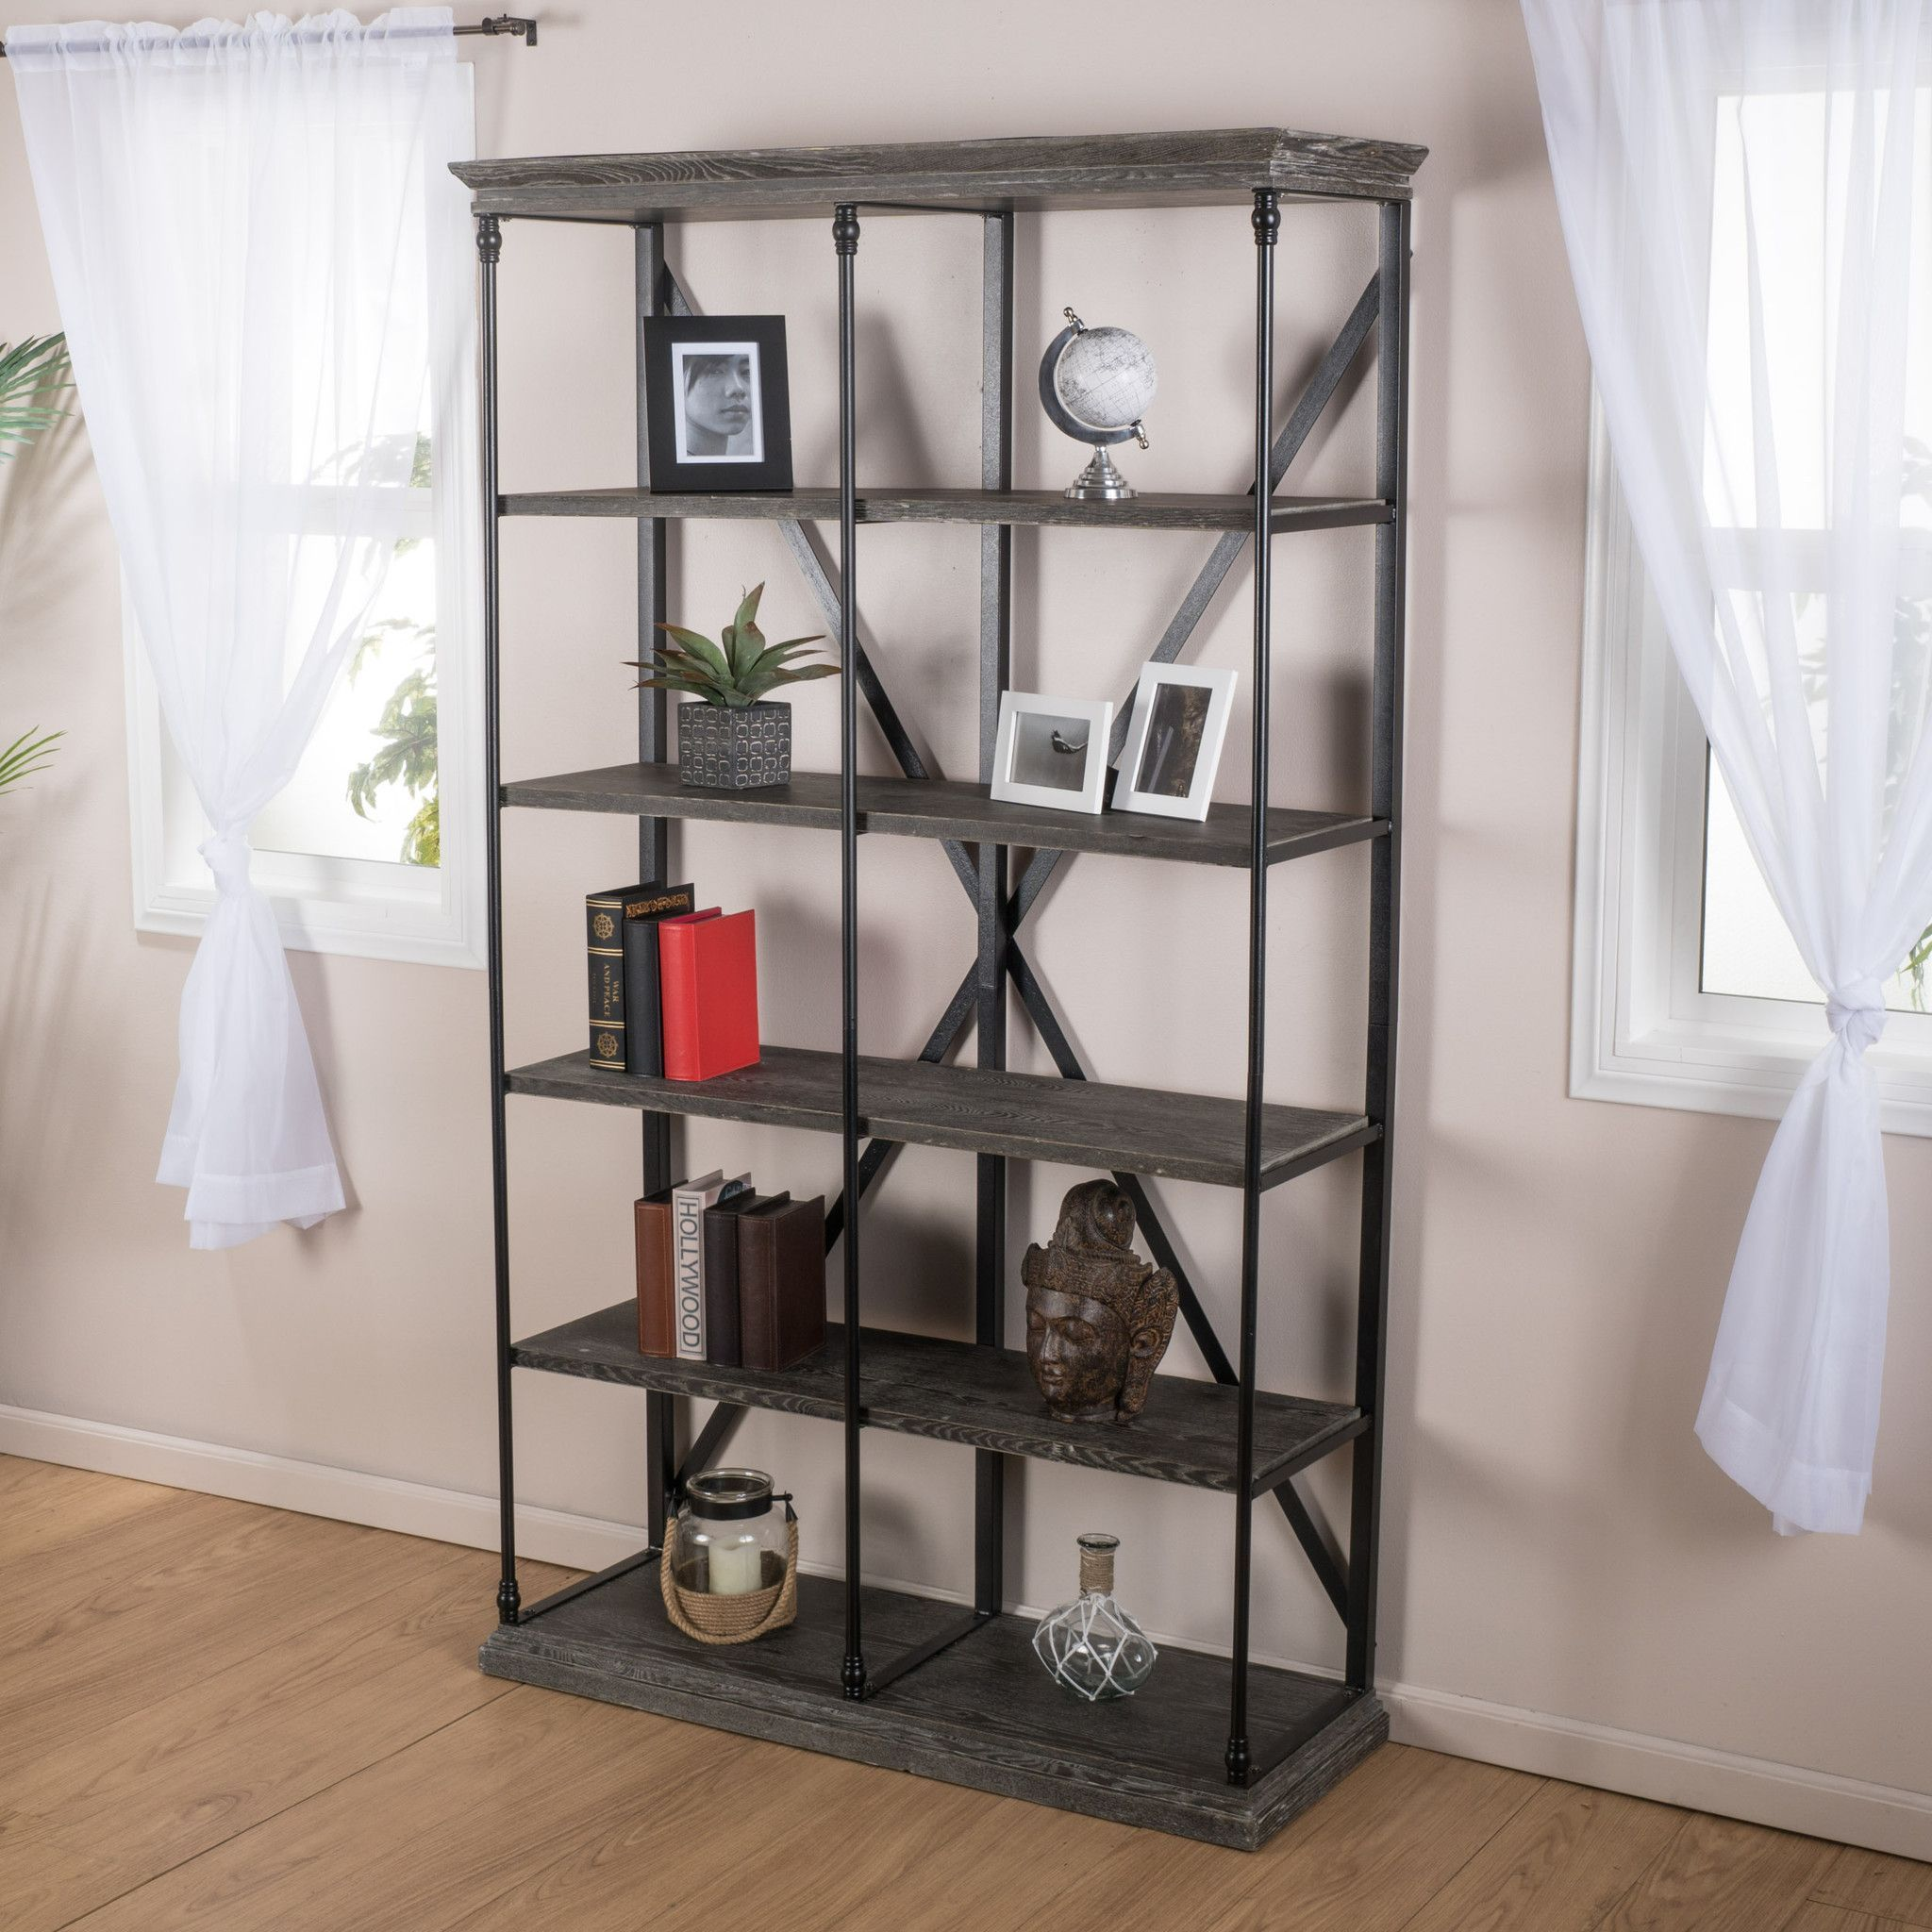 bookshelf wall stylish with shelves cabinets of plus huge and wood metal white designs drawer